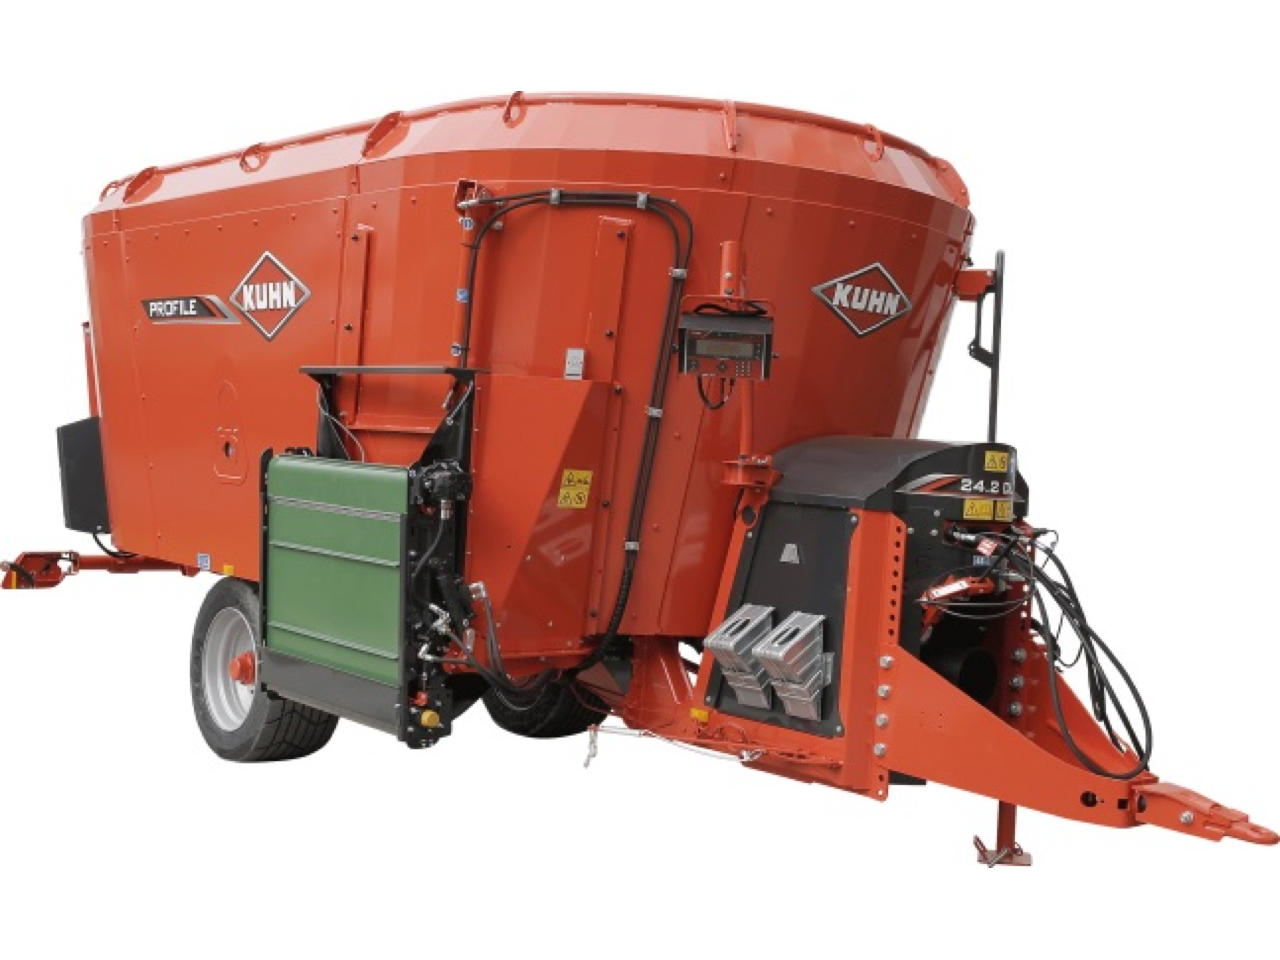 Kuhn Profile 2 DL Profile 24.2 DL